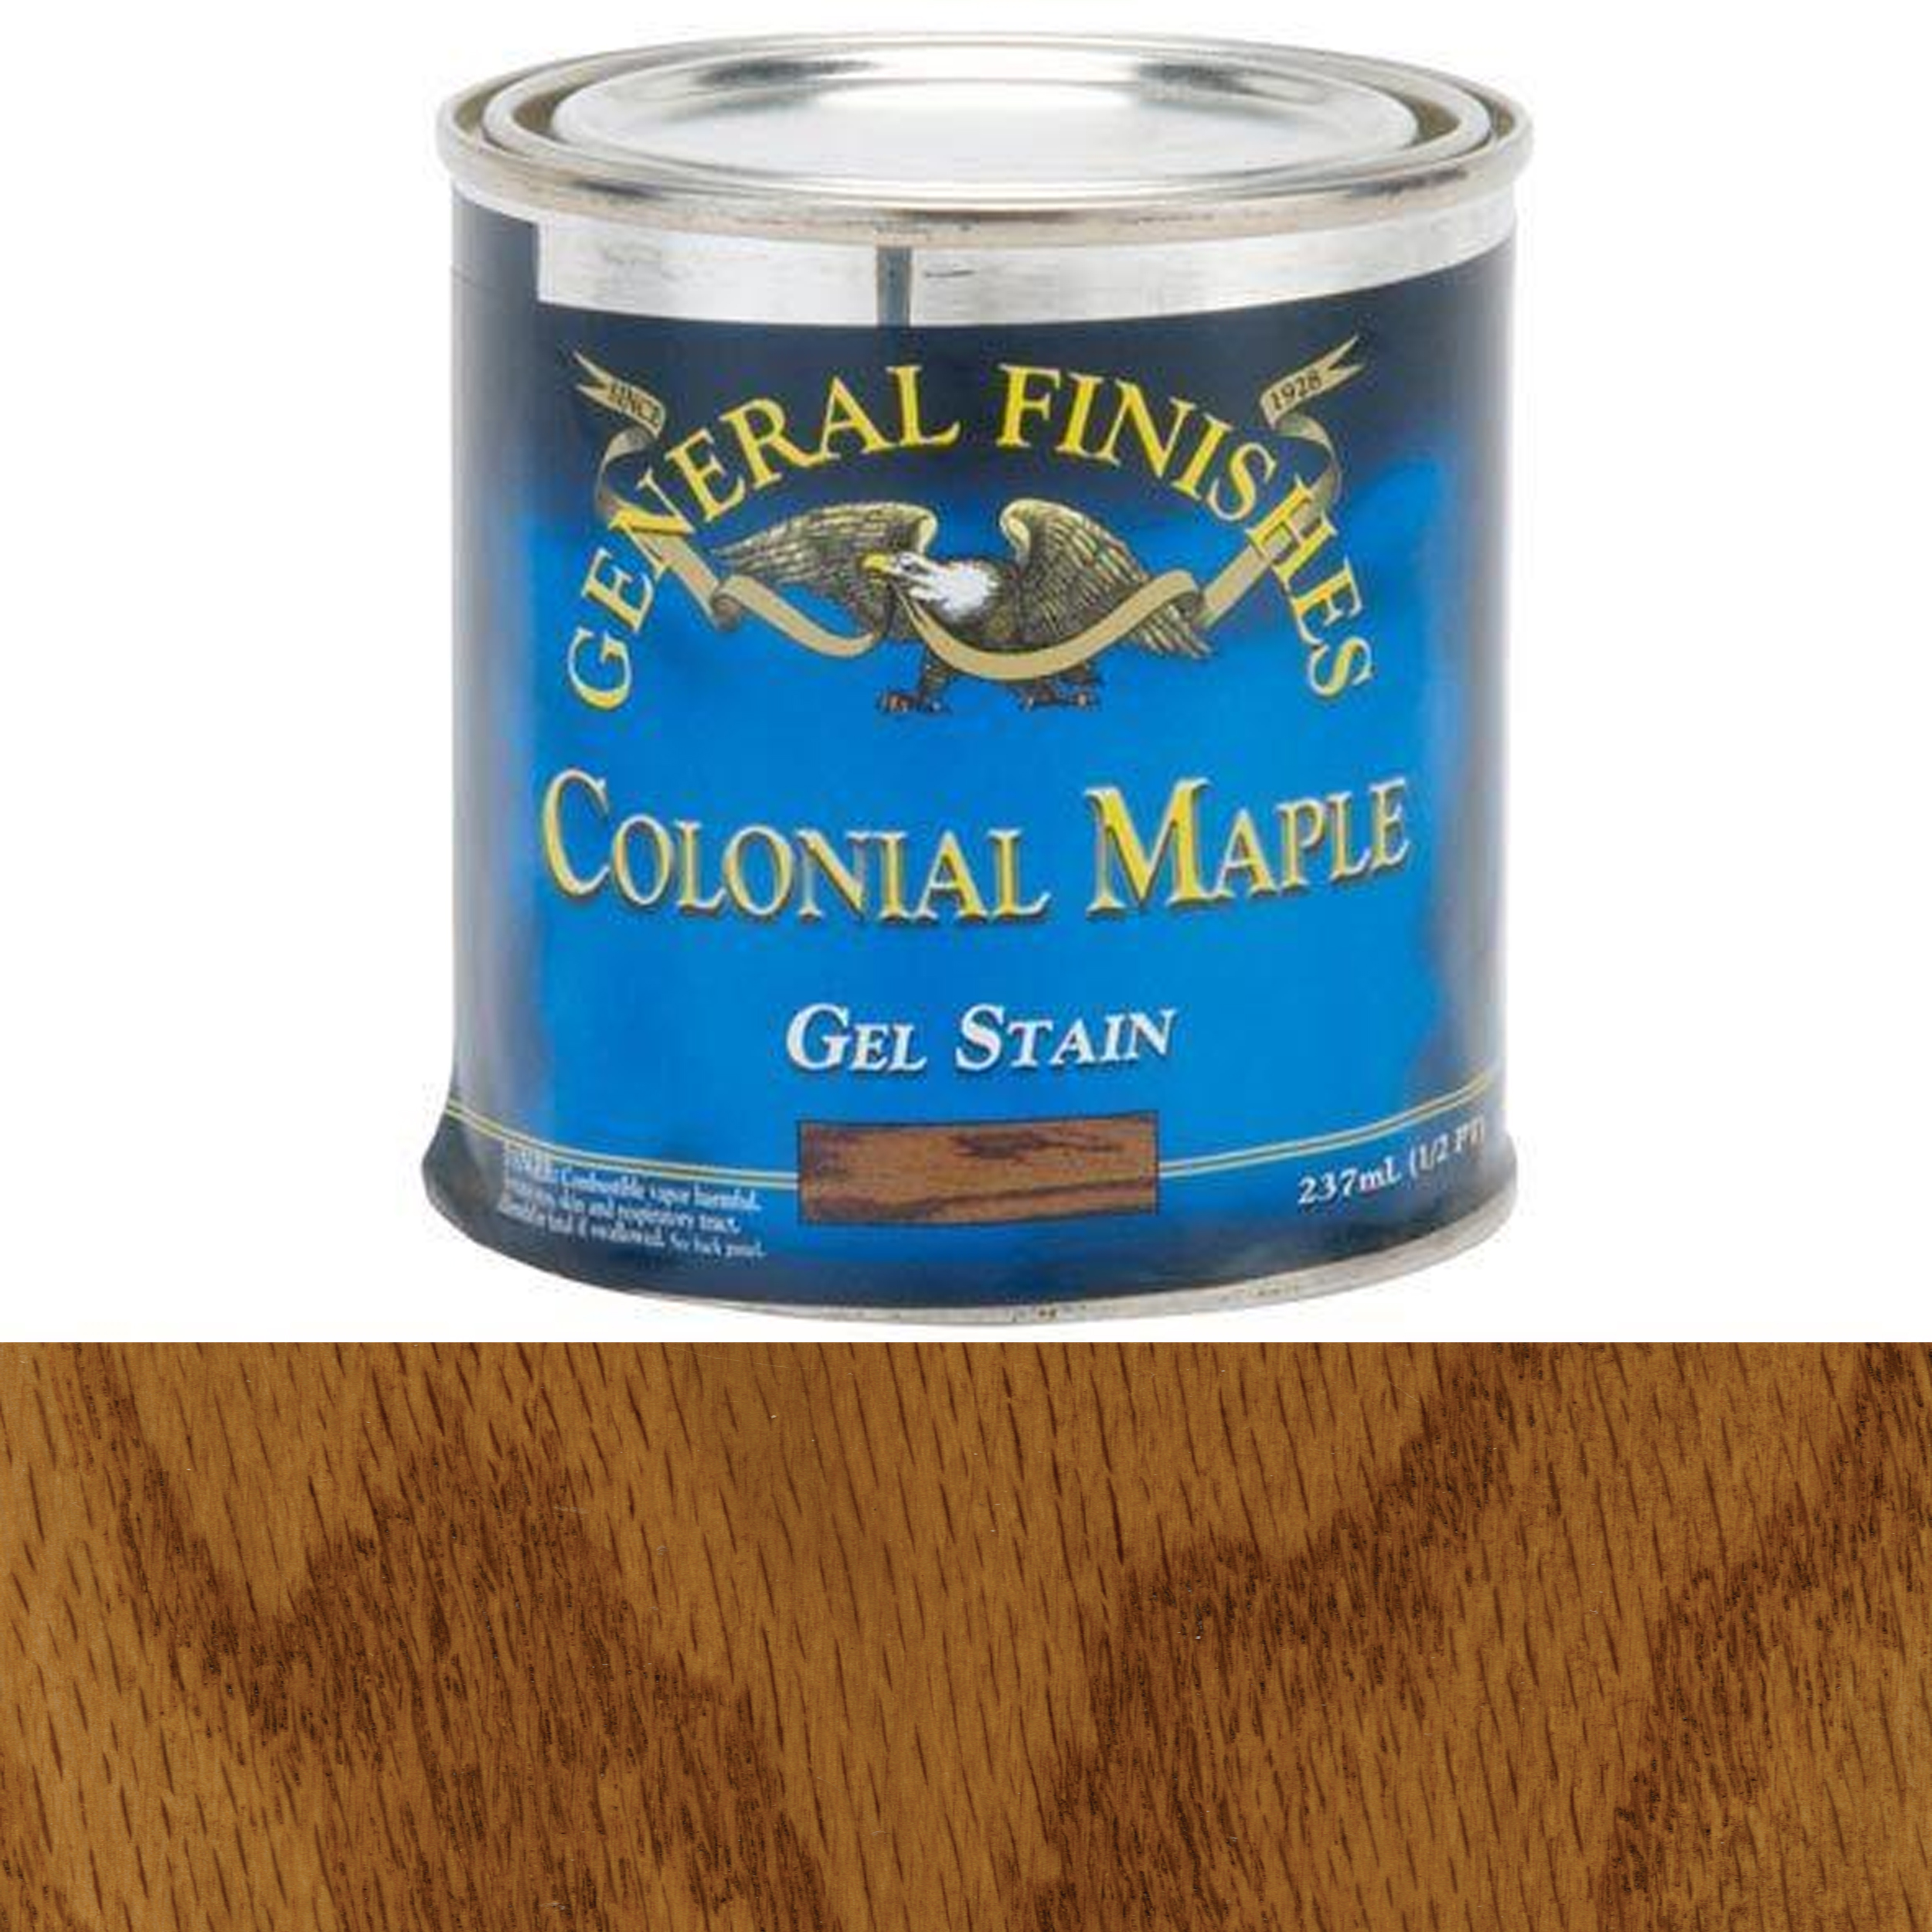 Colonial Maple Gel Stain, 1/2 Pint